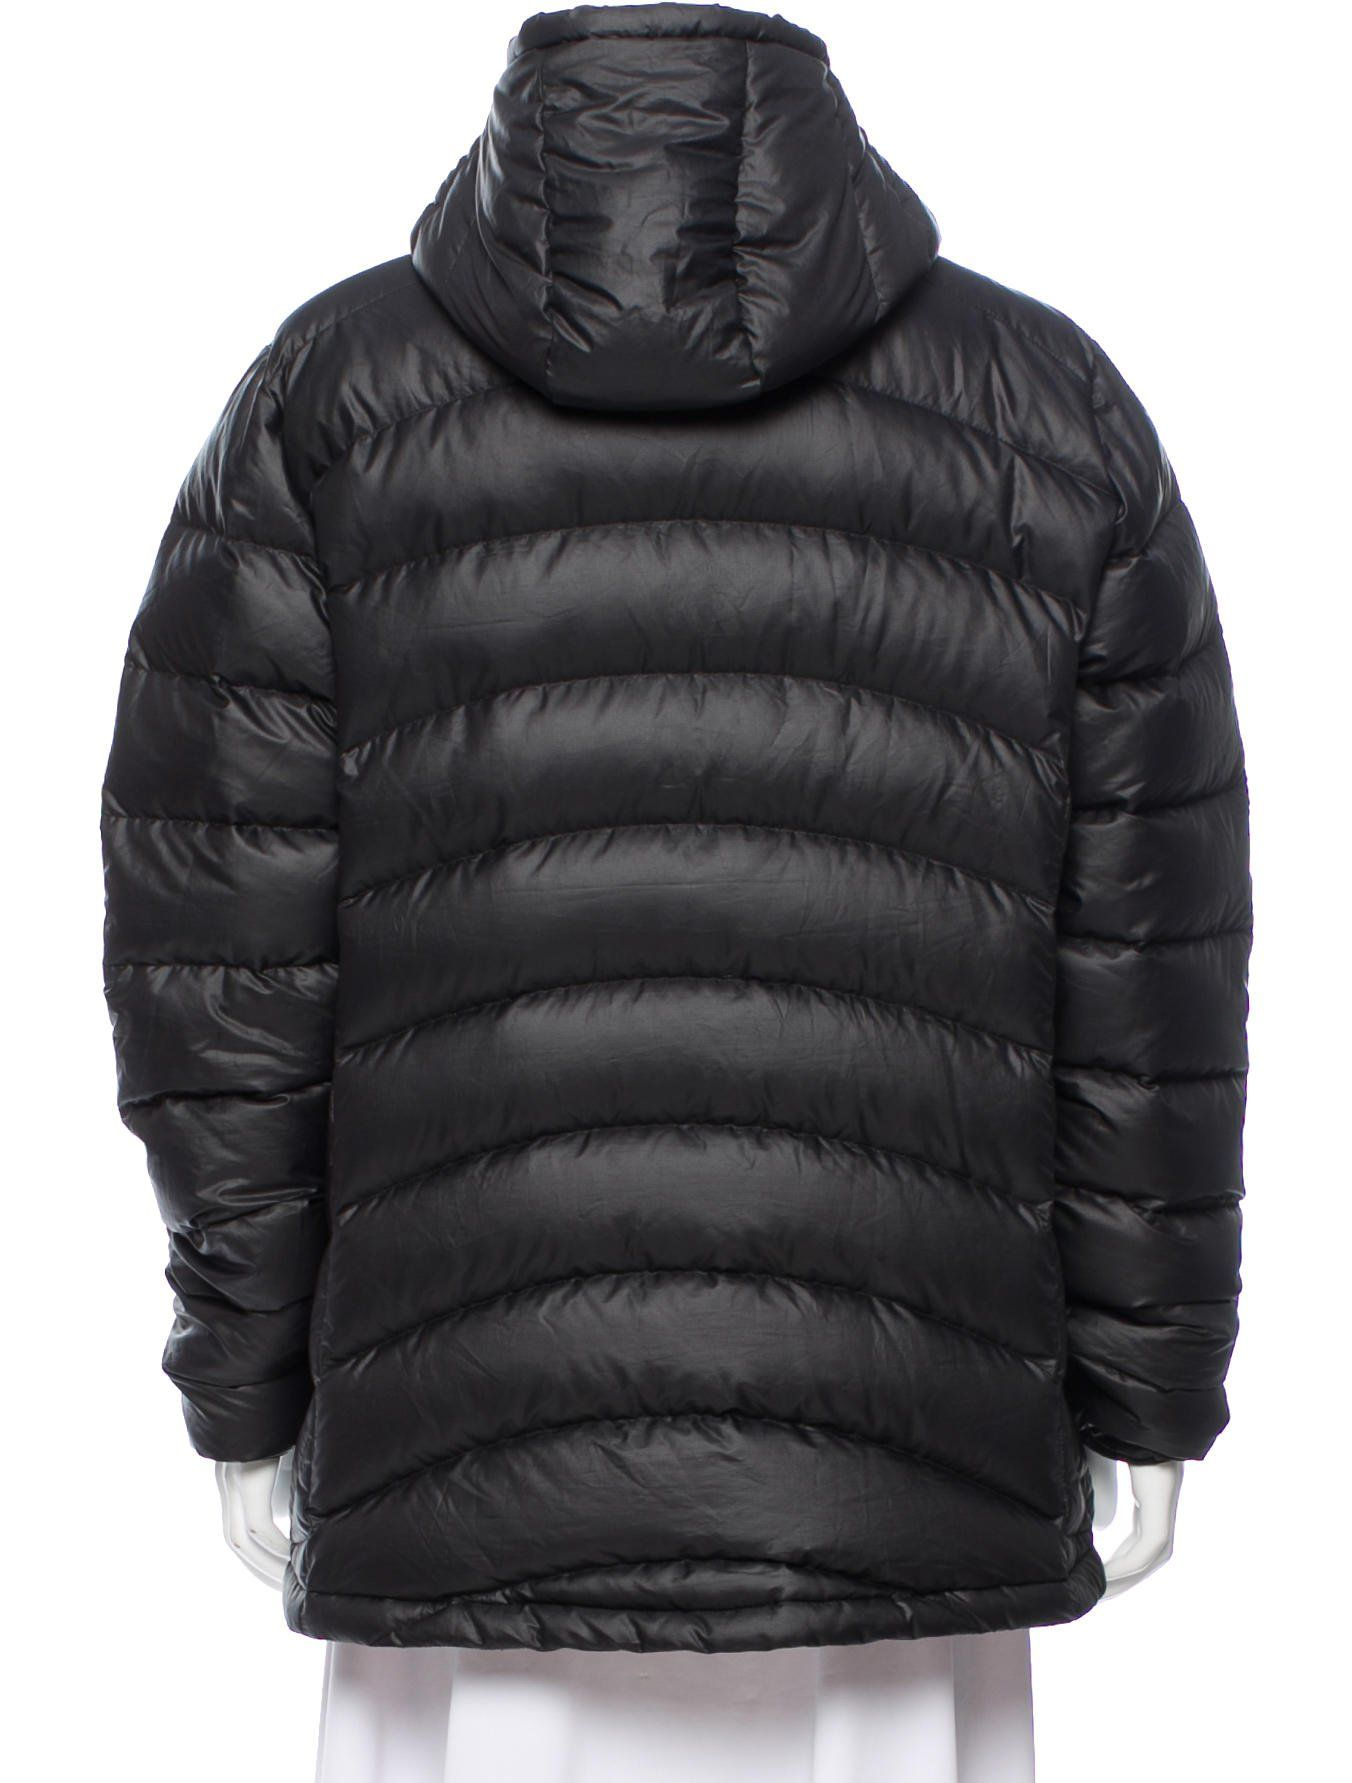 Black Patagonia down puffer jacket with attached hood